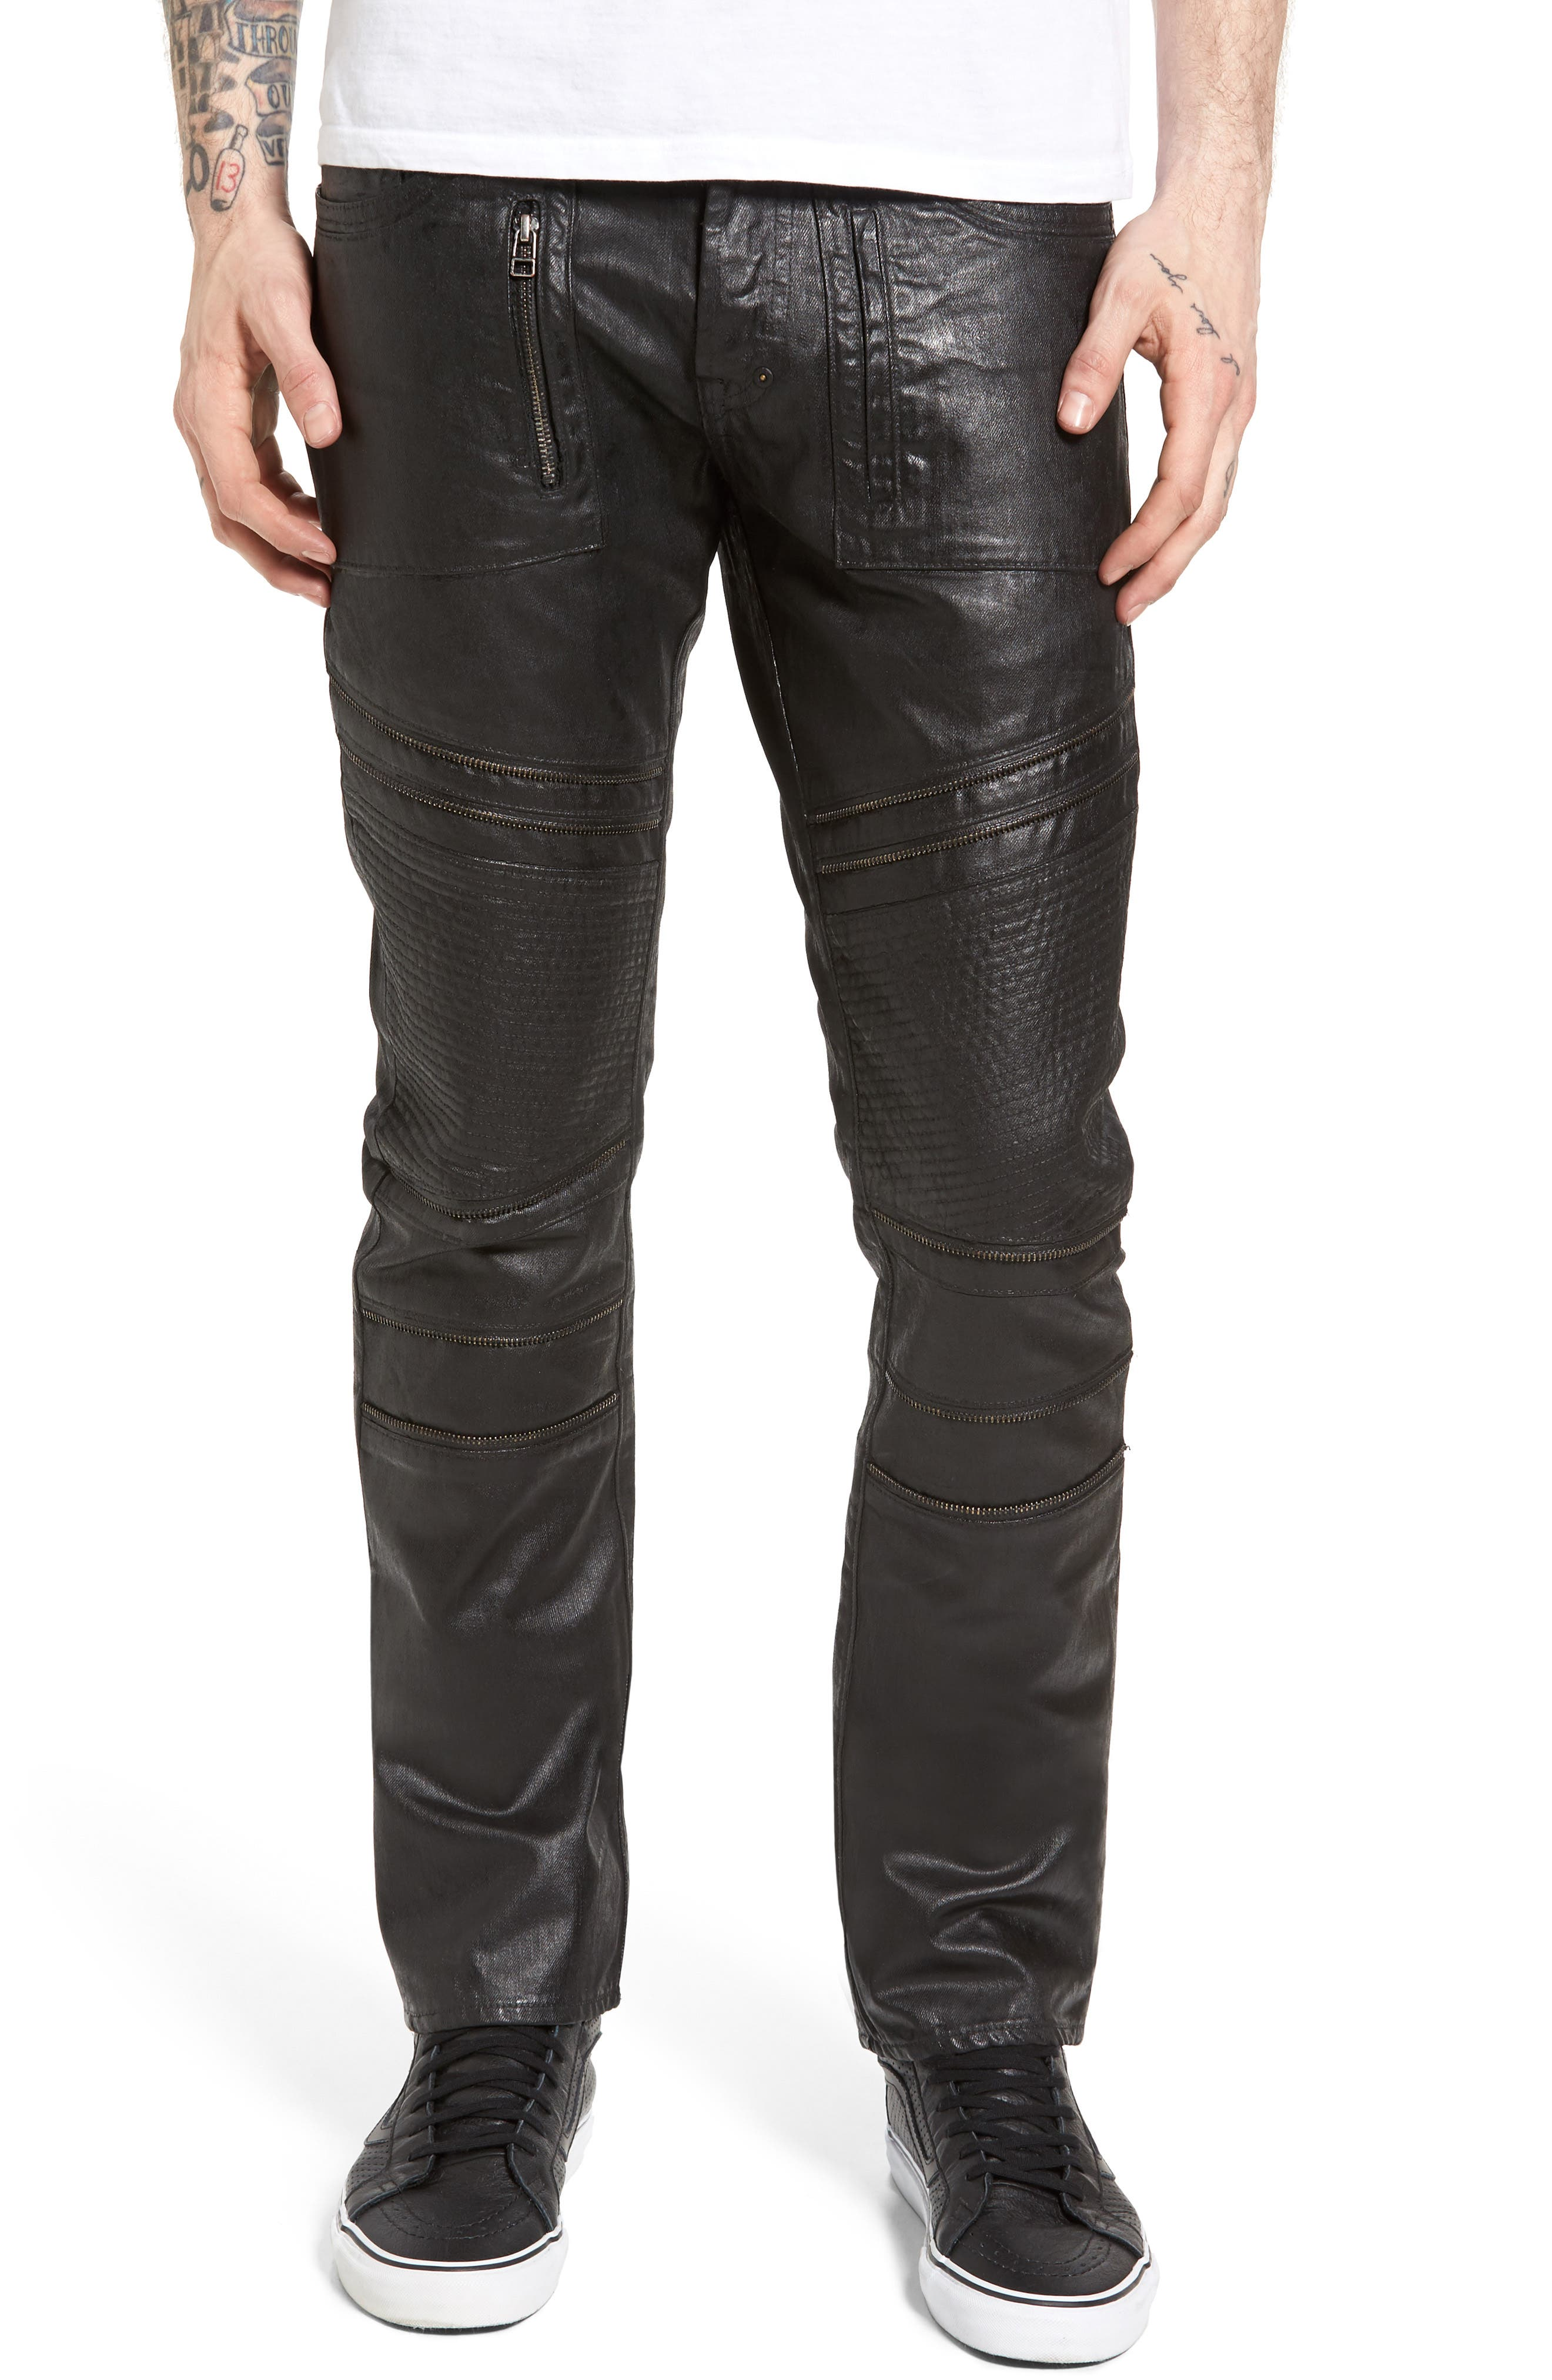 Demon Slim Straight Coated Jeans,                             Main thumbnail 1, color,                             001